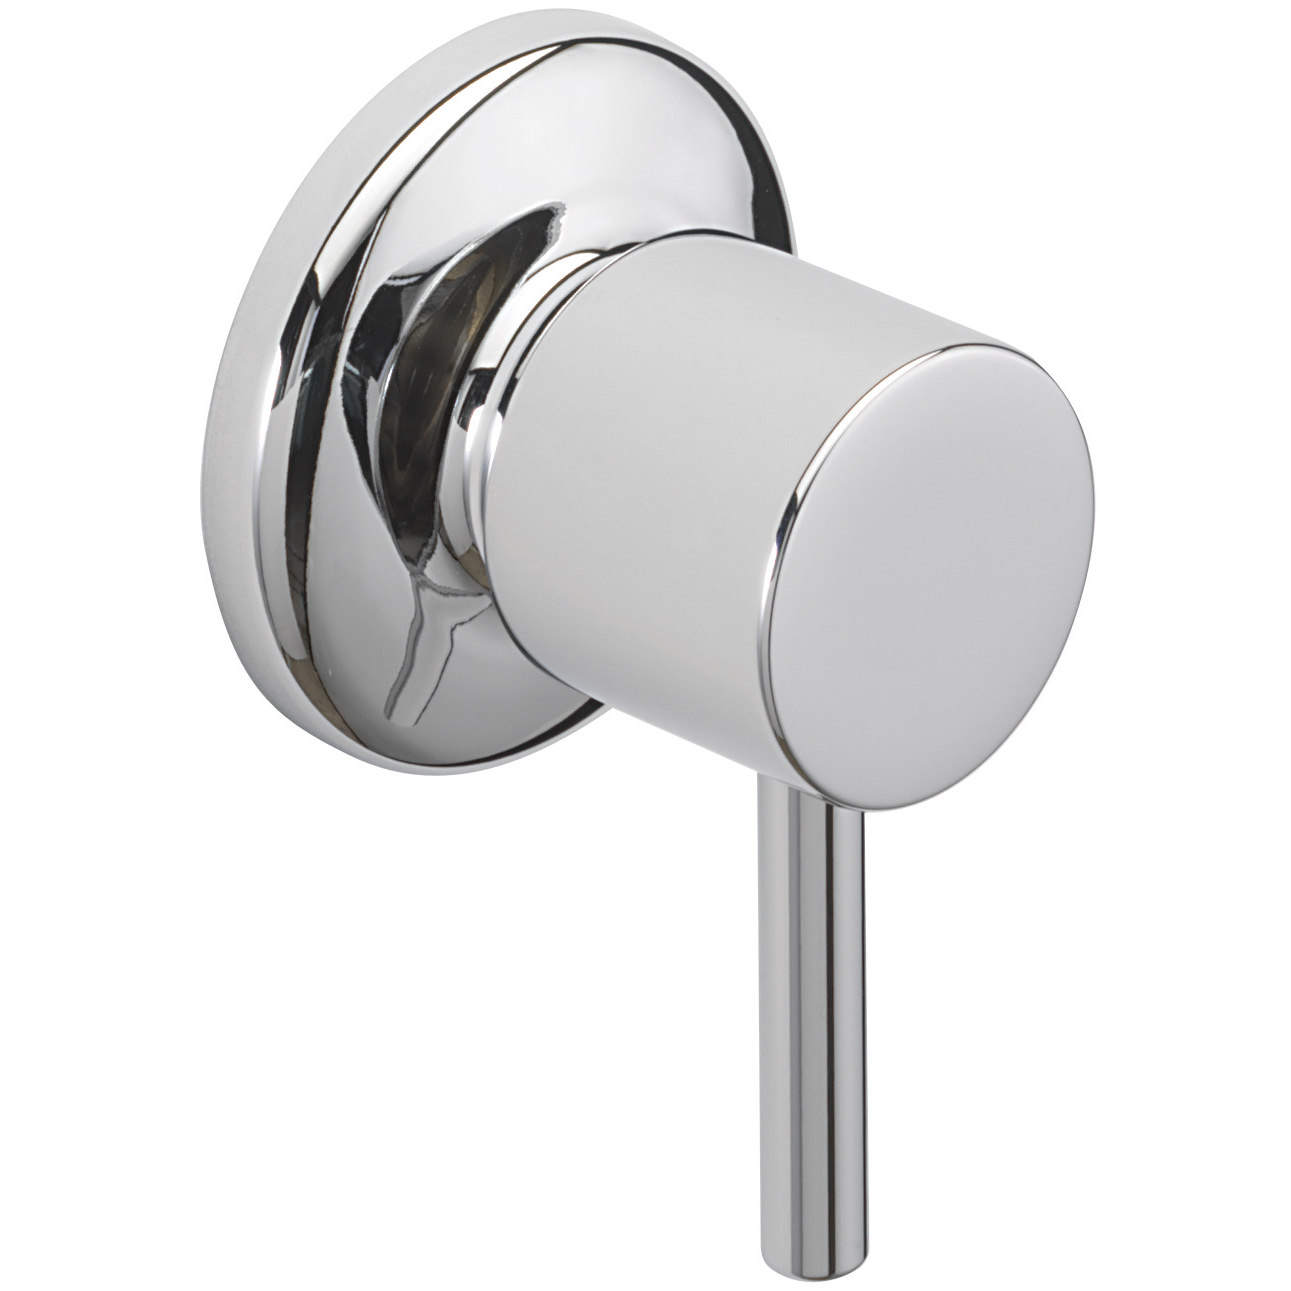 Sagittarius Ergo Lever 3 Way Wall Mounted Diverter Valve